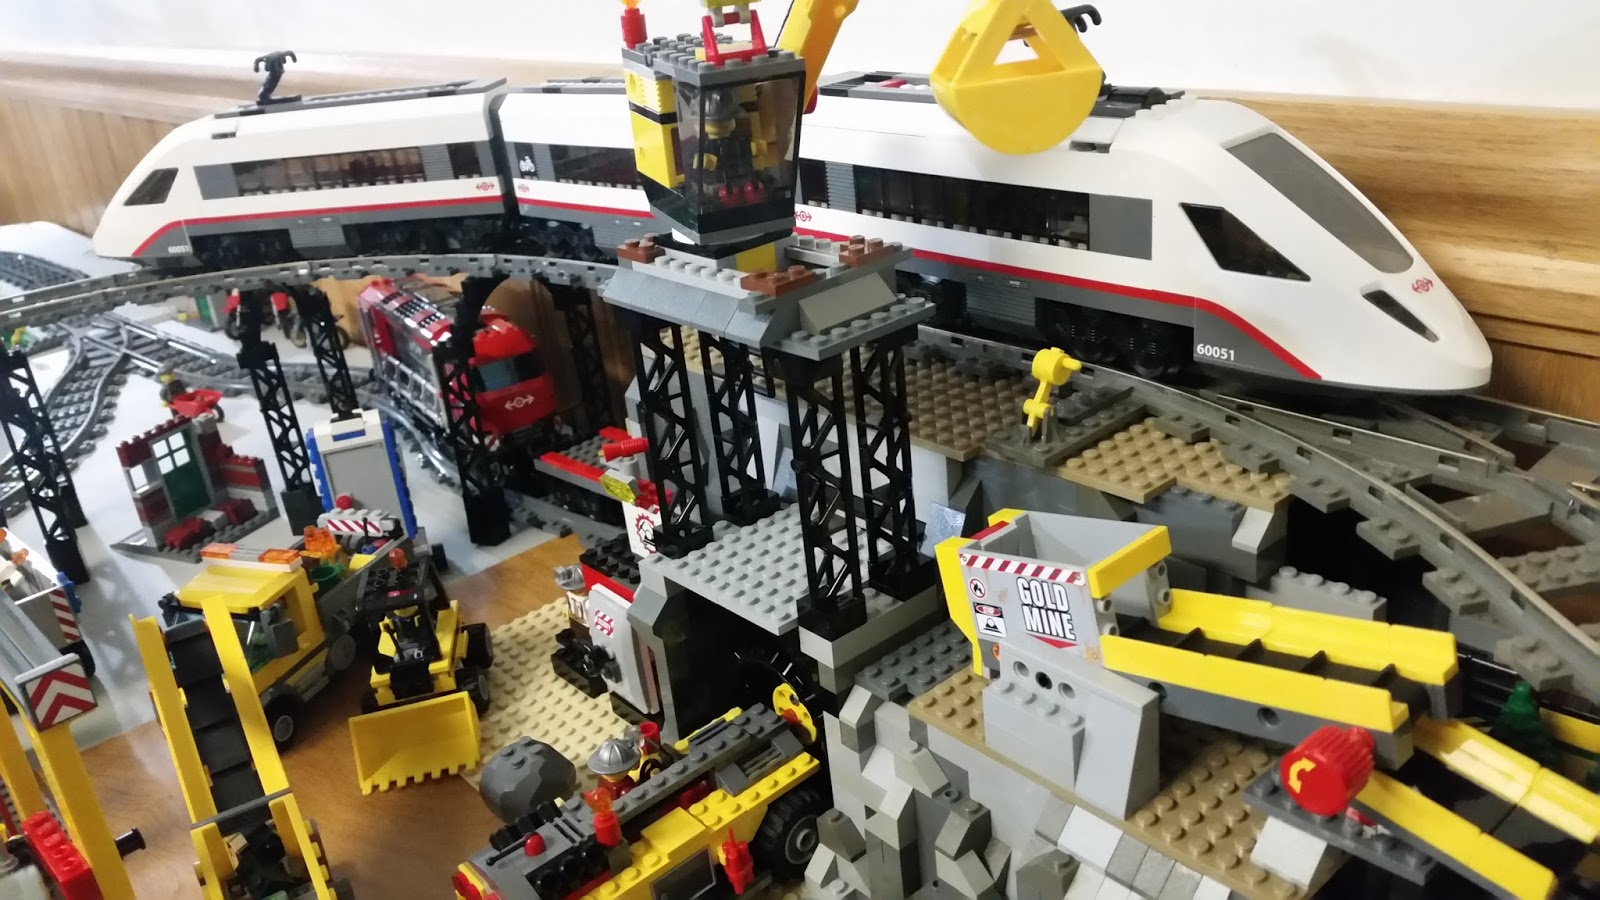 REVIEW: LEGO 60051: High-Speed Passenger Train (and a Peek ...